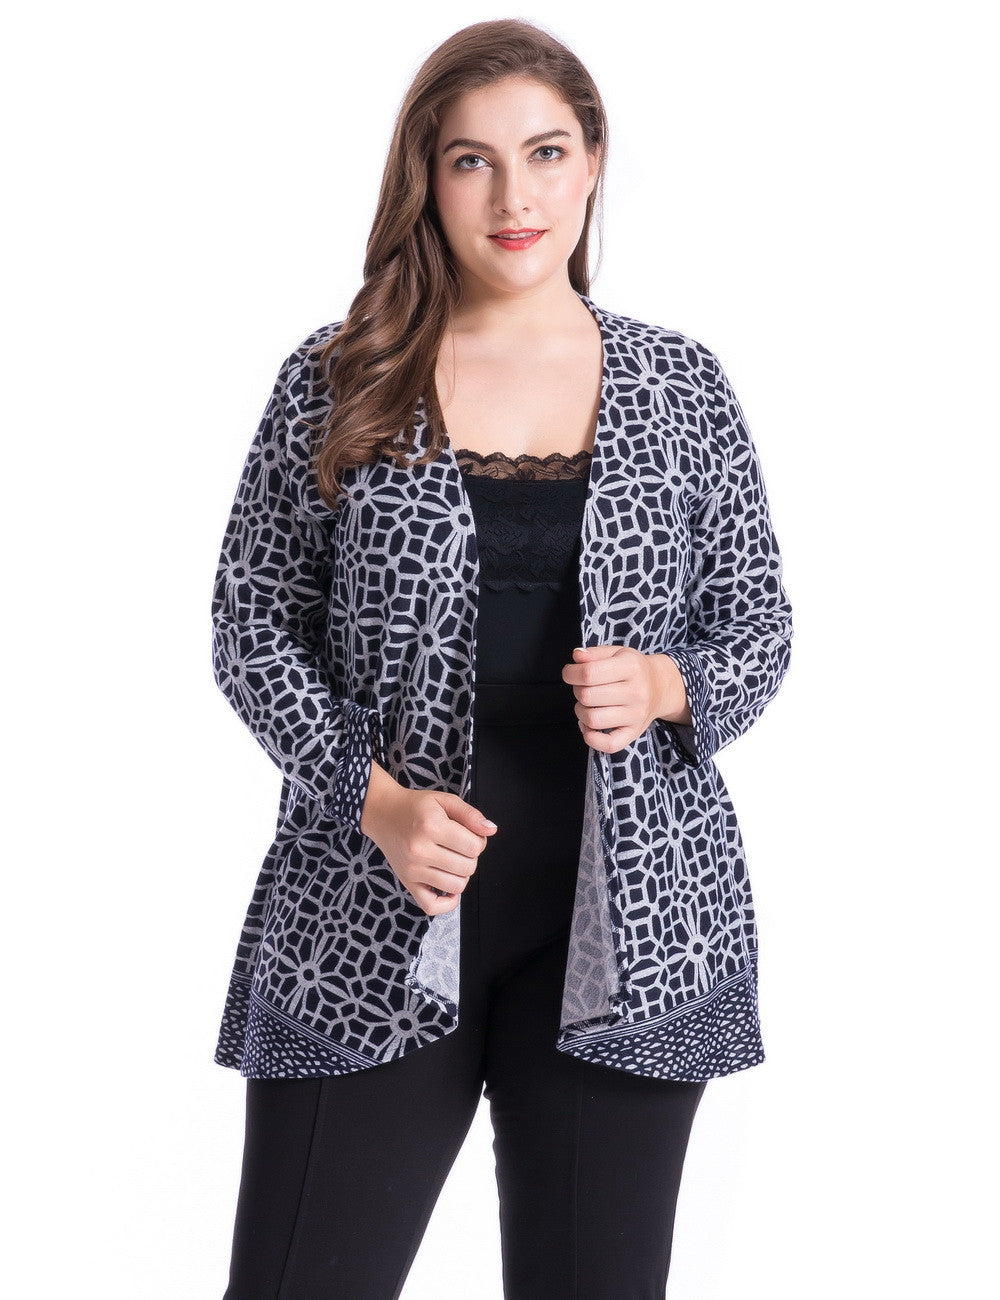 Chicwe Women's Cashmere Touch Plus Size Floral Print Casual Cardigan Jacket 1X-4X